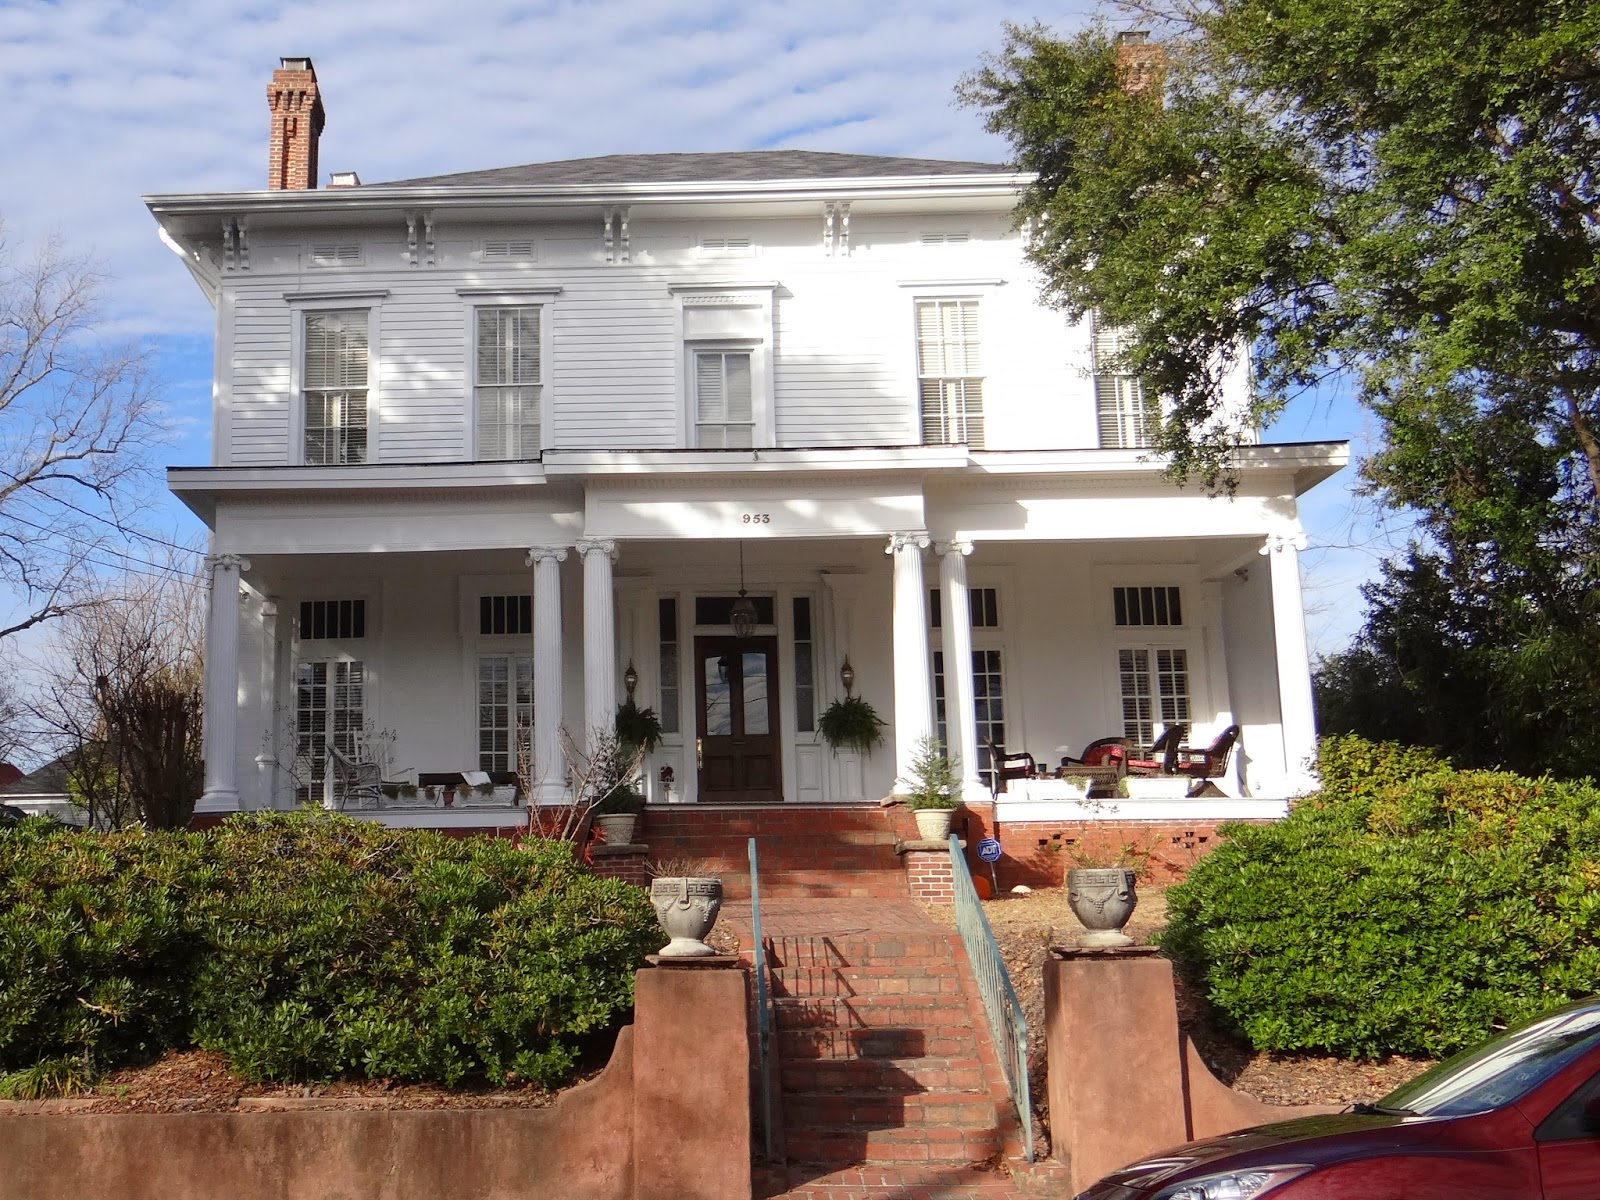 Walkabout with wheels blog historic homes in macon georgia for Home builders macon ga